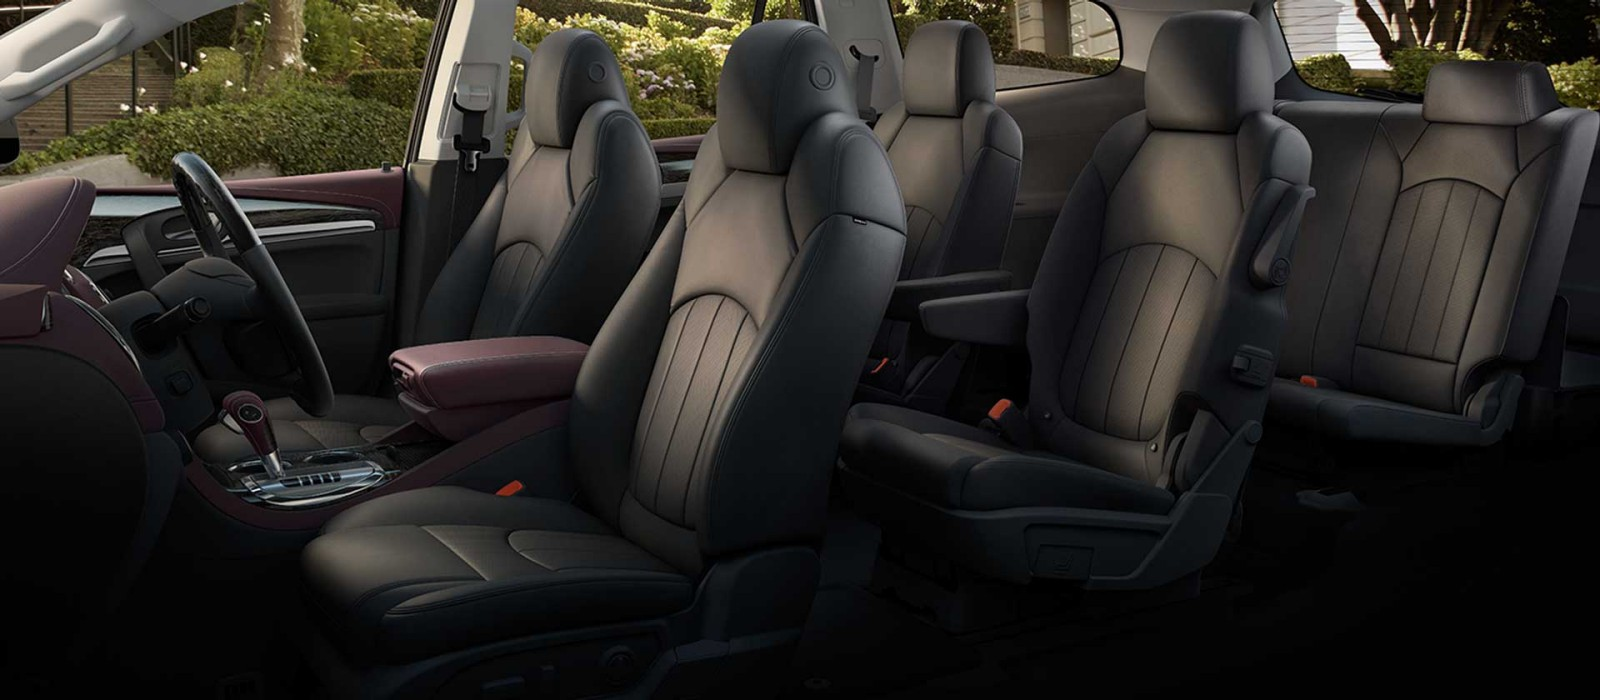 Buick Enclave with 7-Passenger Seating